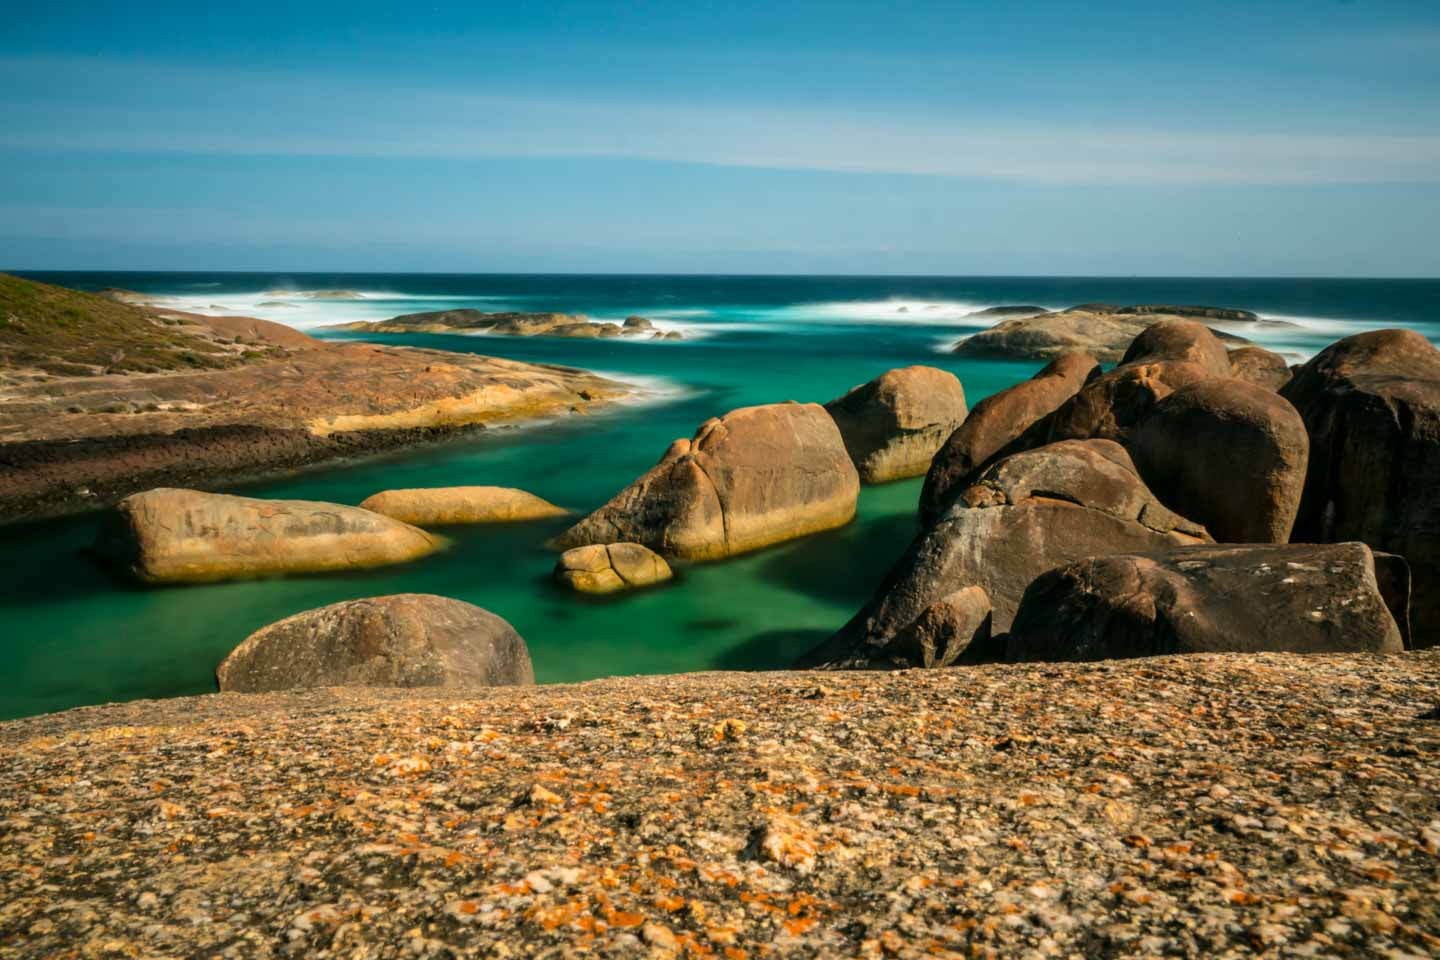 Herd of Elephants on Elephant Rocks beach in William National Park Denmark Western Australia